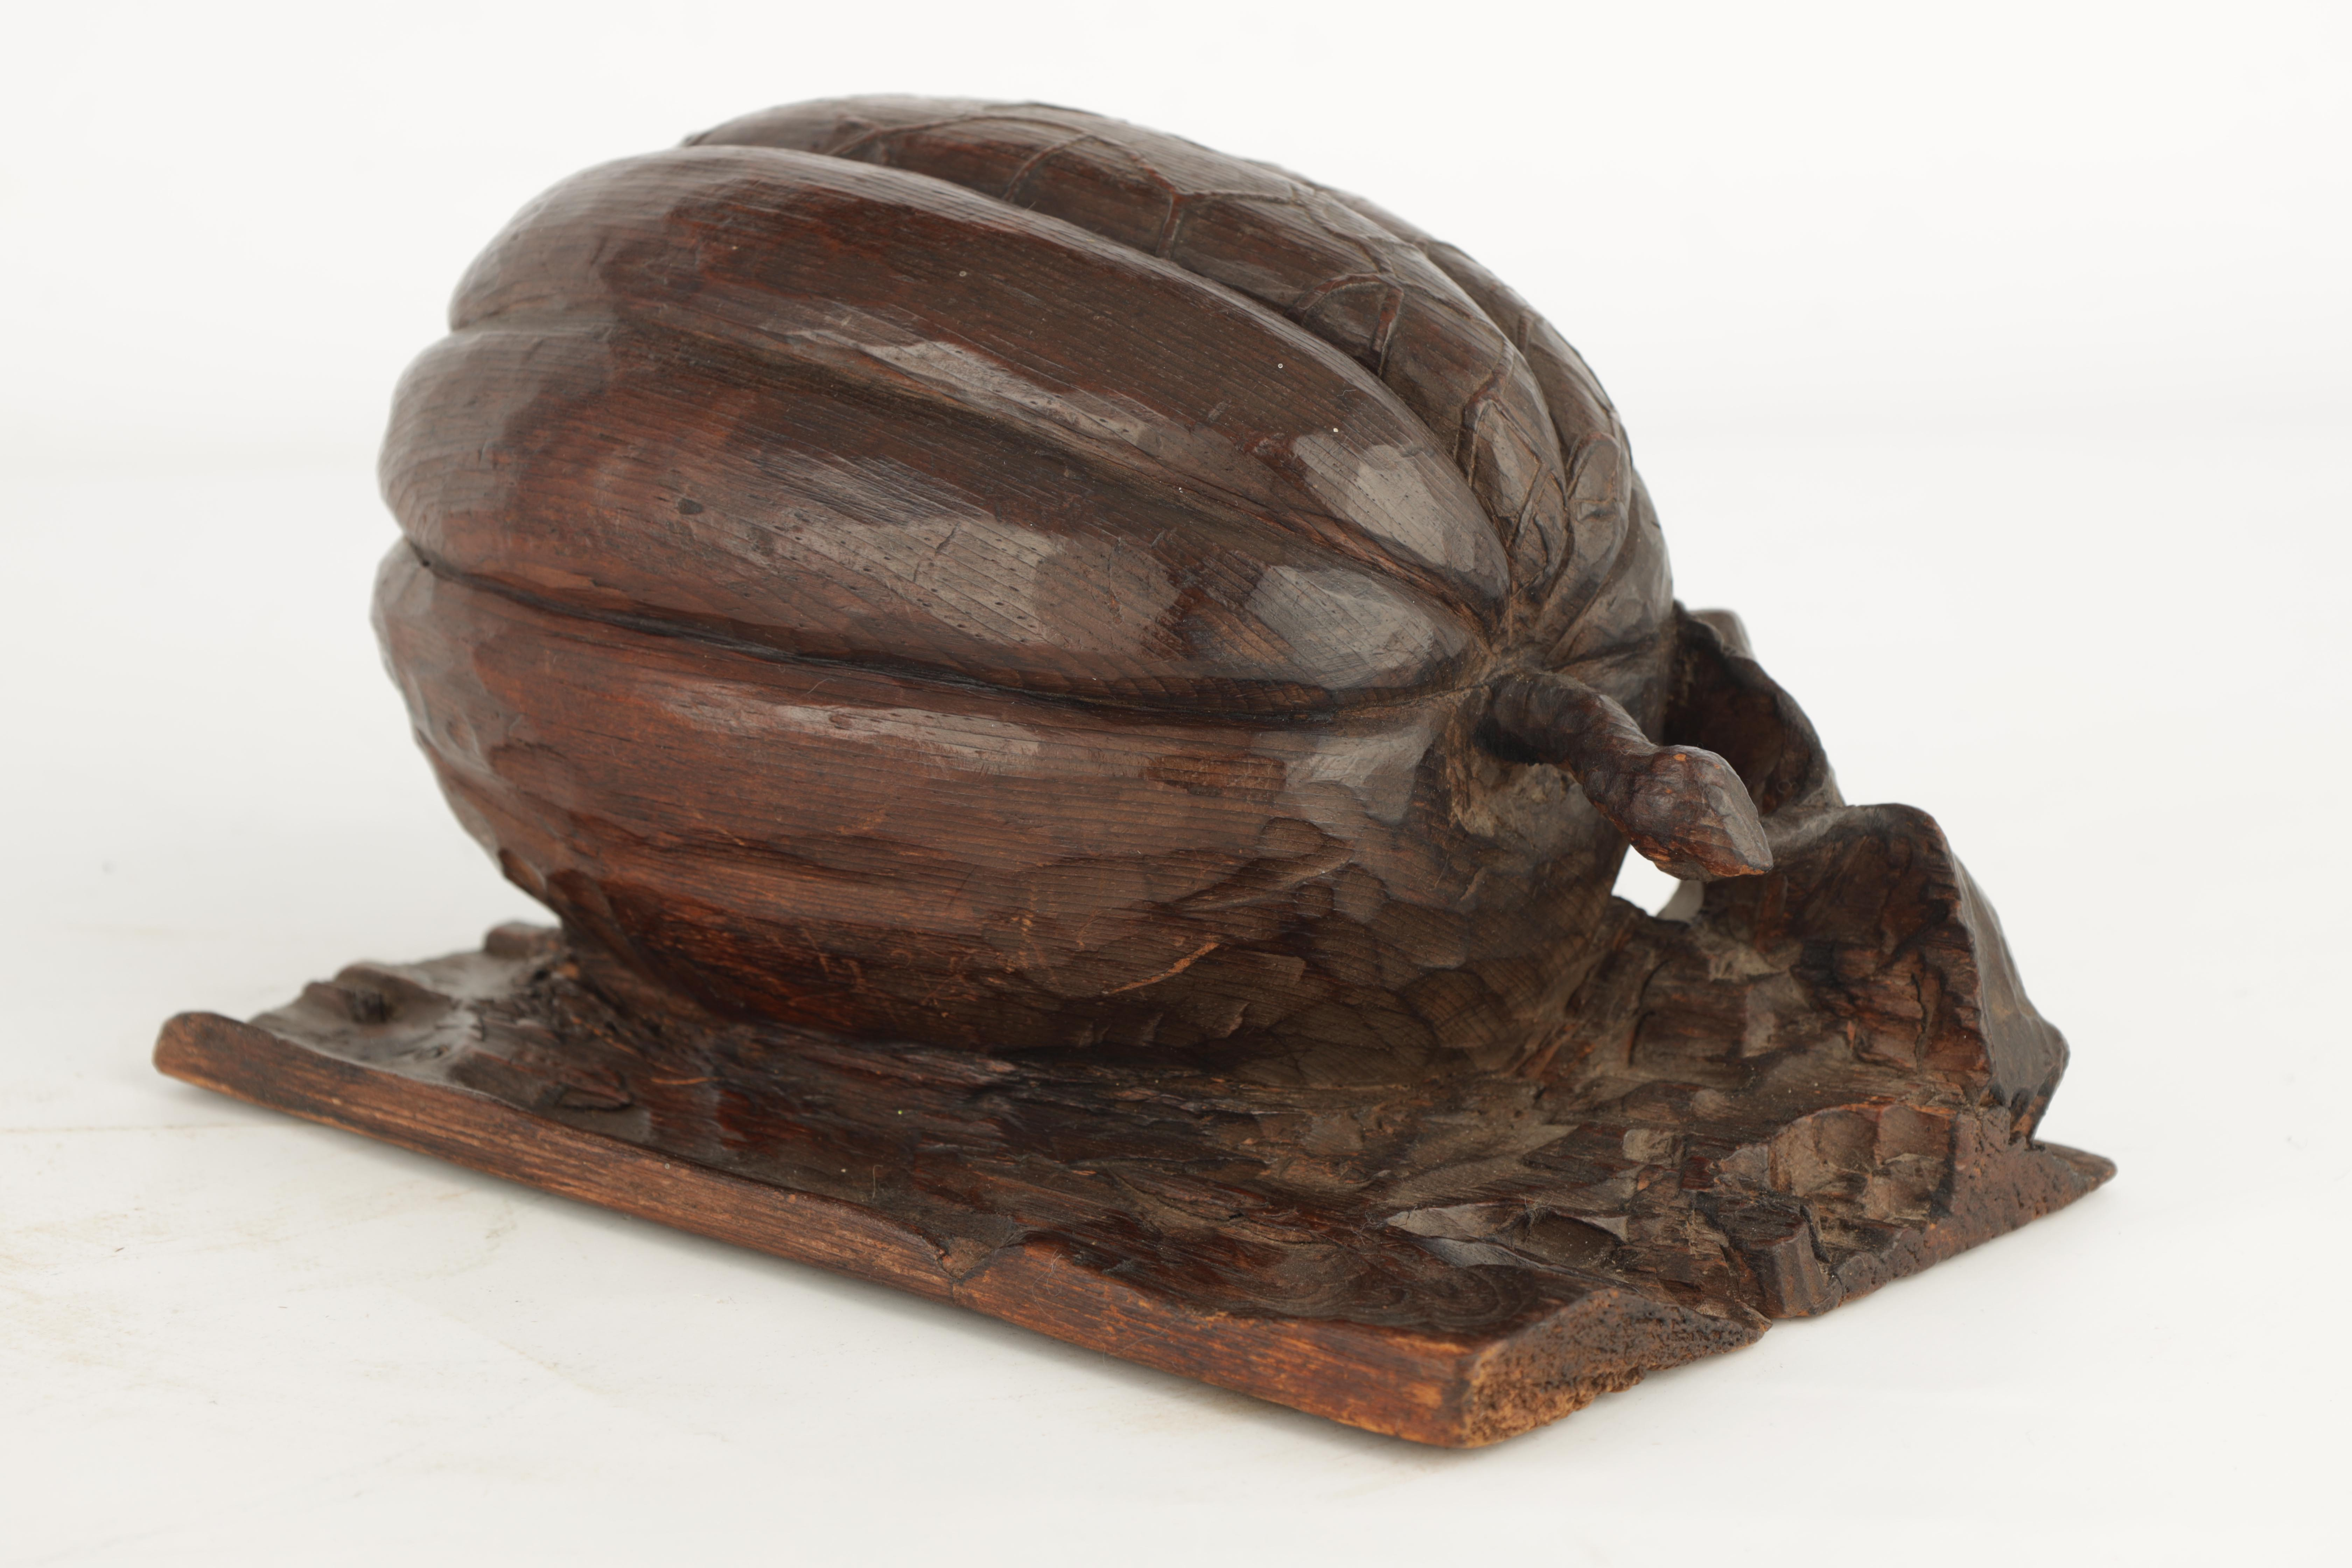 A 19TH CENTURY CARVED OAK SCULPTURE modelled as a pumpkin on a naturalistic base 23.5cm wide, 13cm - Image 5 of 7